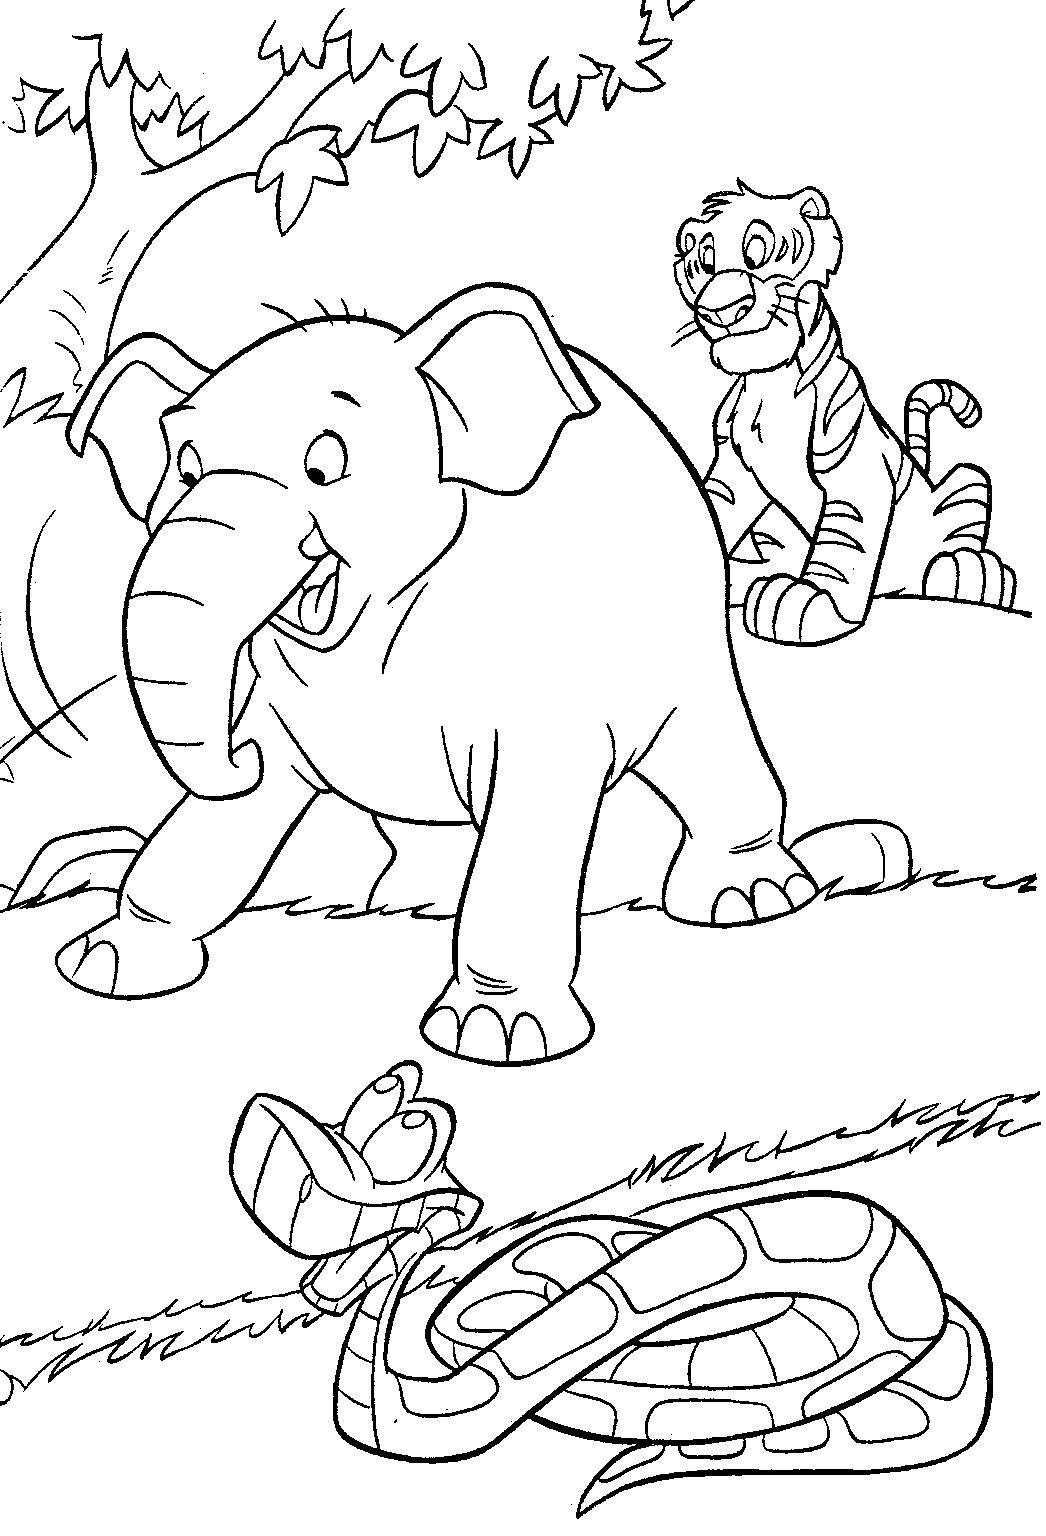 printable jungle animals coloring pages jungle animal coloring pages to download and print for free pages jungle animals coloring printable